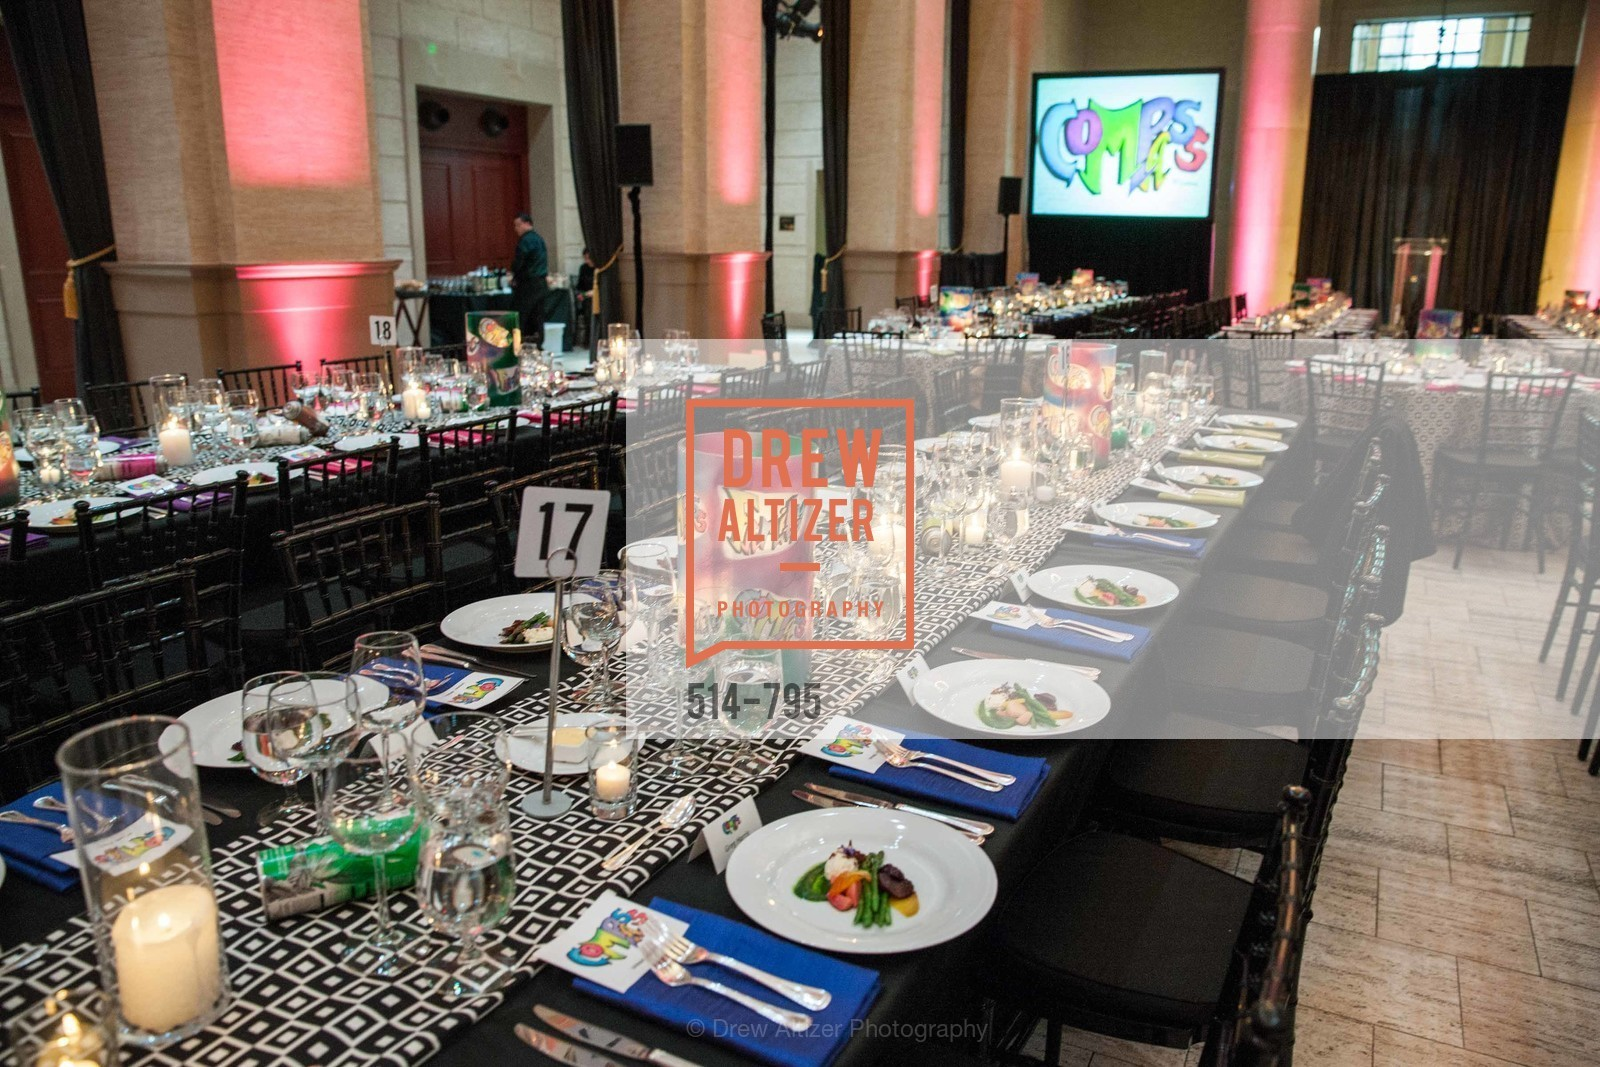 Atmosphere, COMPASS FAMILY SERVICES Annual Spring Benefit:  Every Family Needs A Home, US, April 23rd, 2015,Drew Altizer, Drew Altizer Photography, full-service agency, private events, San Francisco photographer, photographer california